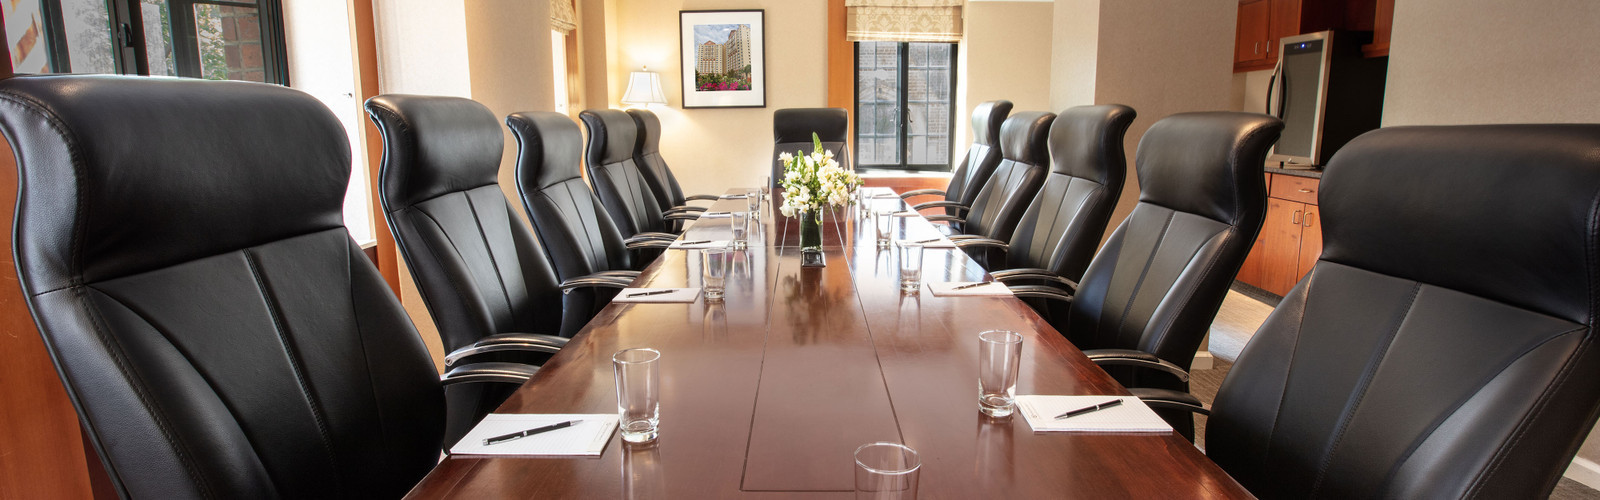 NYC Meeting Board Rooms   Westgate New York Grand Central